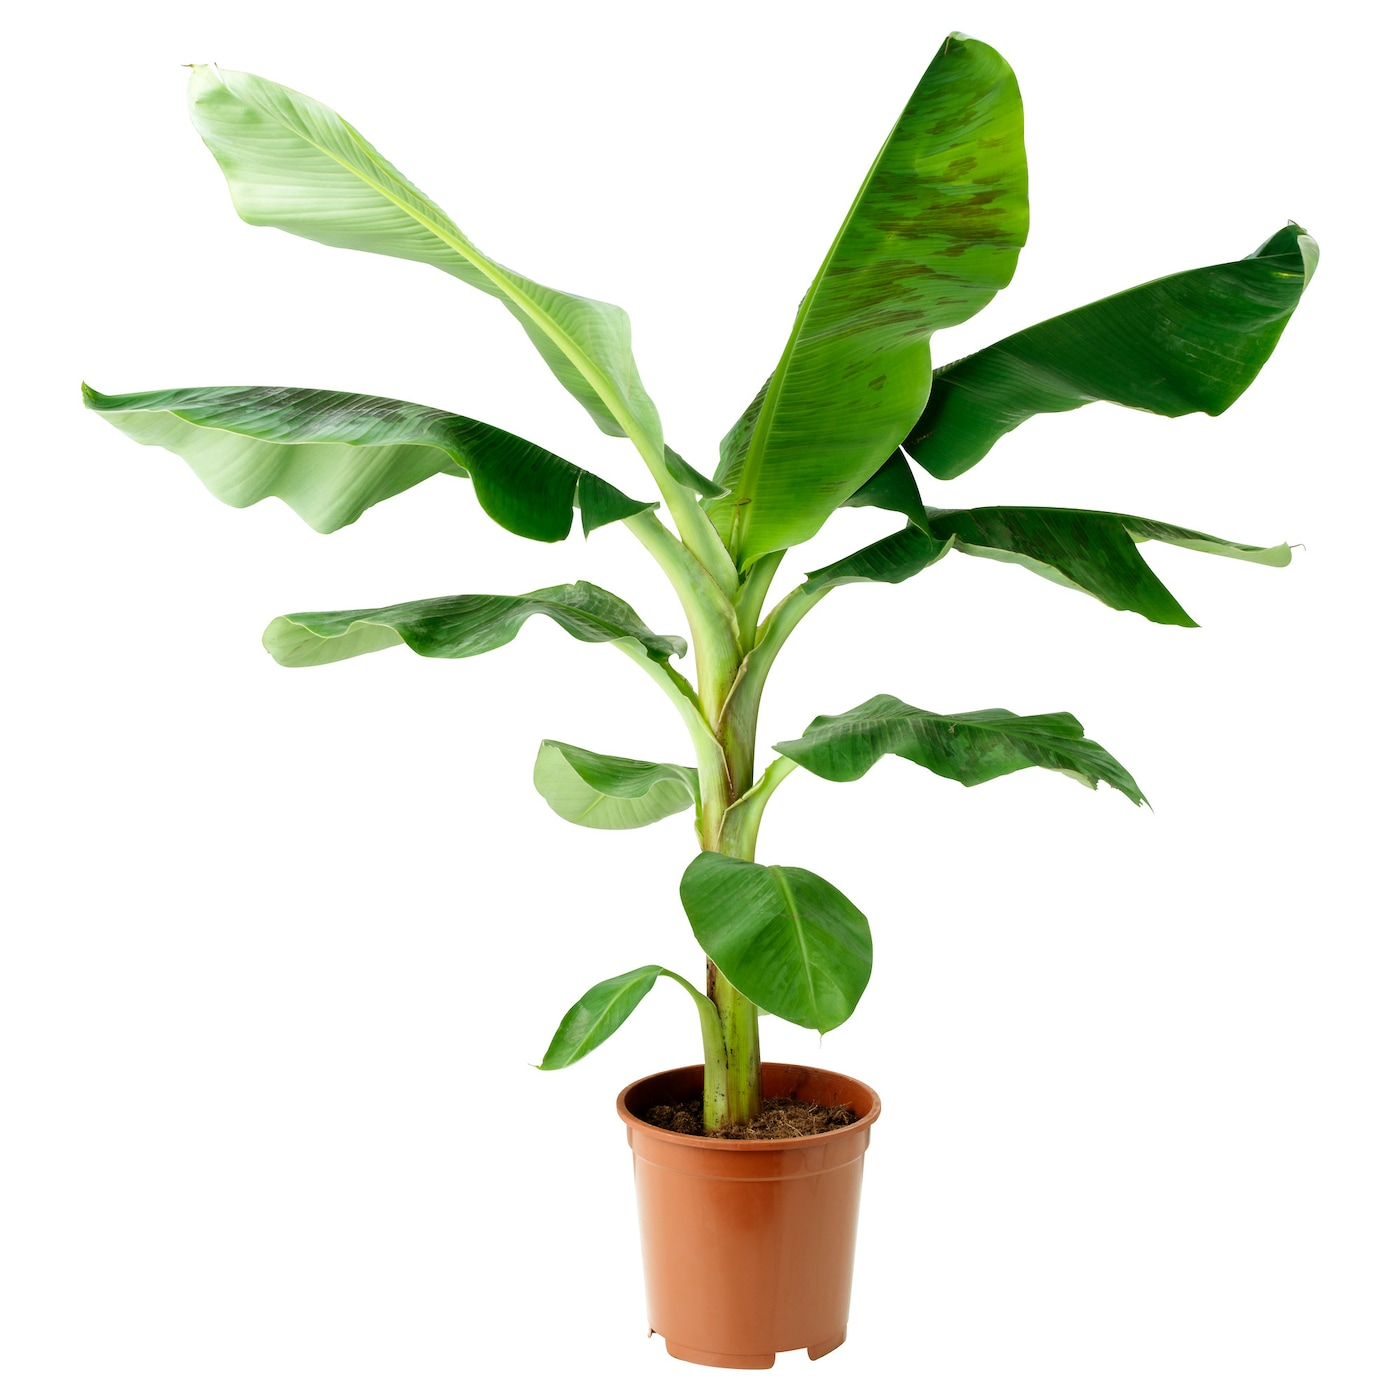 musa banana plante en pot 21 cm ikea. Black Bedroom Furniture Sets. Home Design Ideas